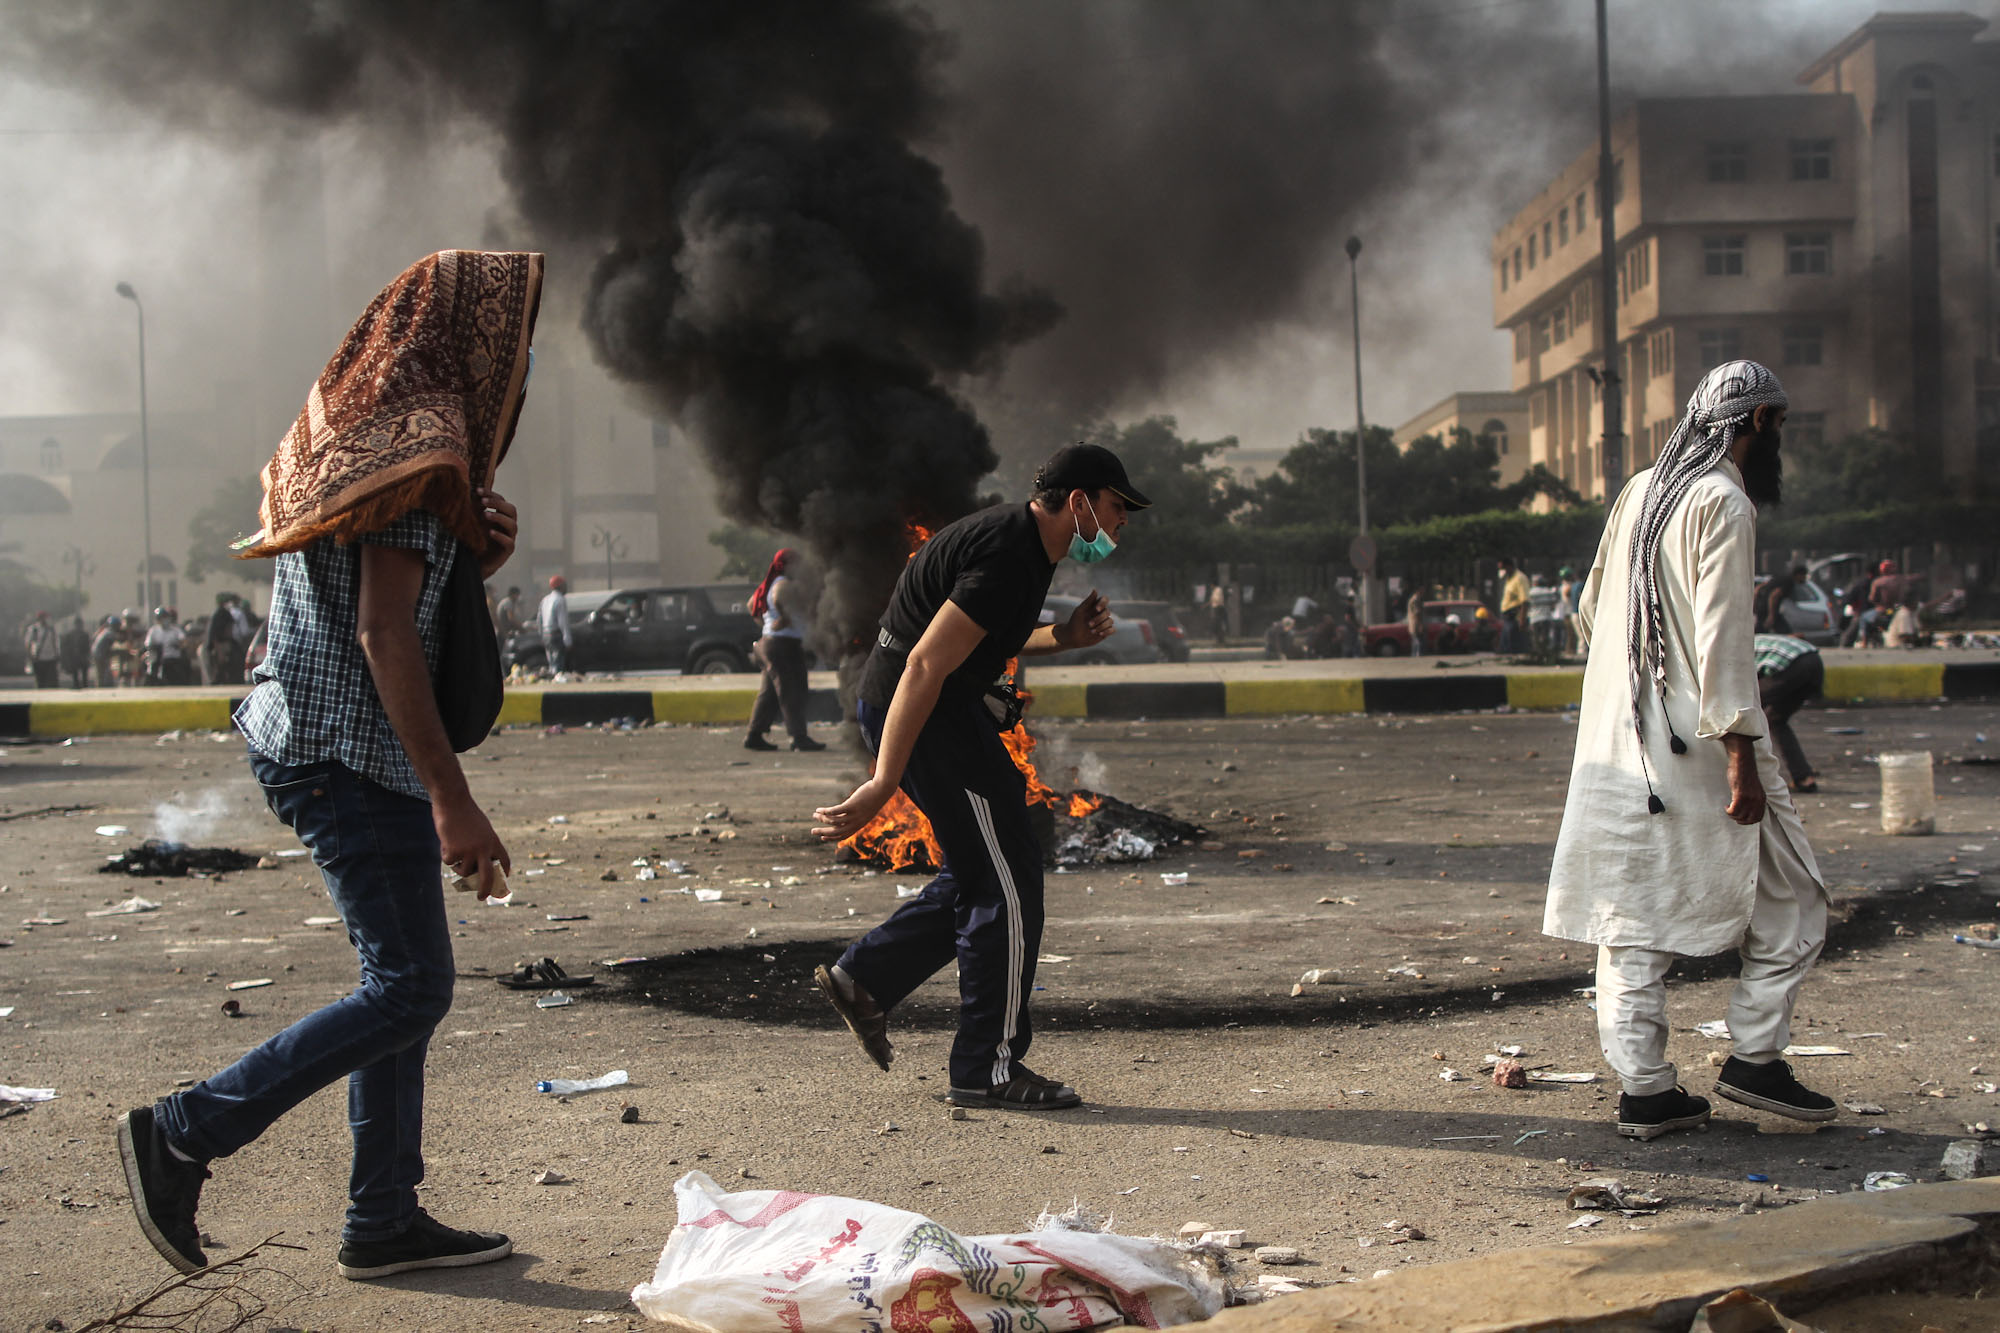 Morsi supporters run for cover during the clashes.